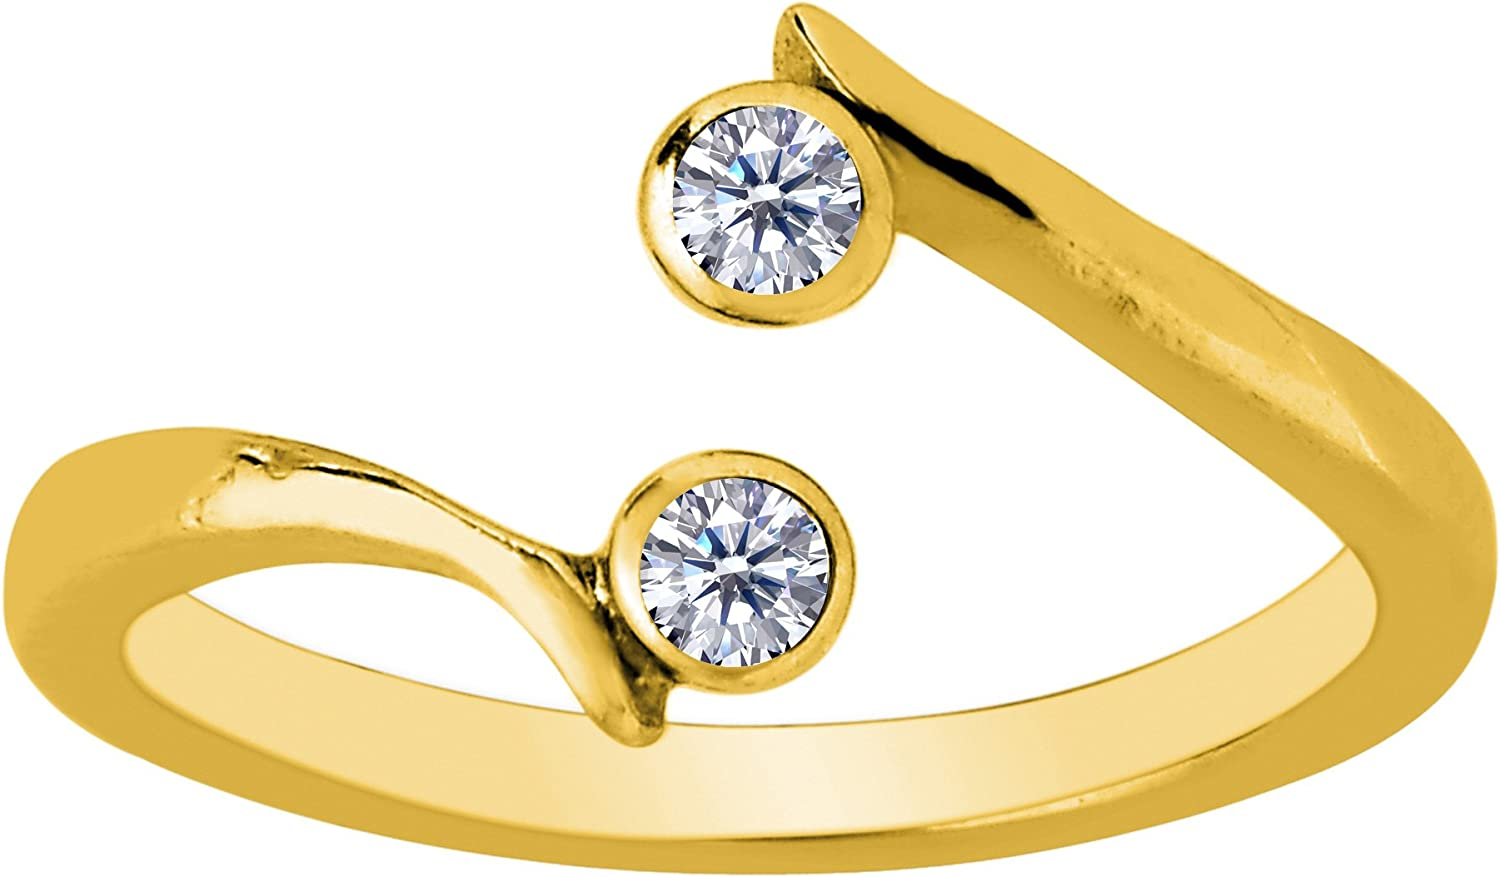 14K Yellow Gold Adjustable Solitaire Toe Ring with CZ